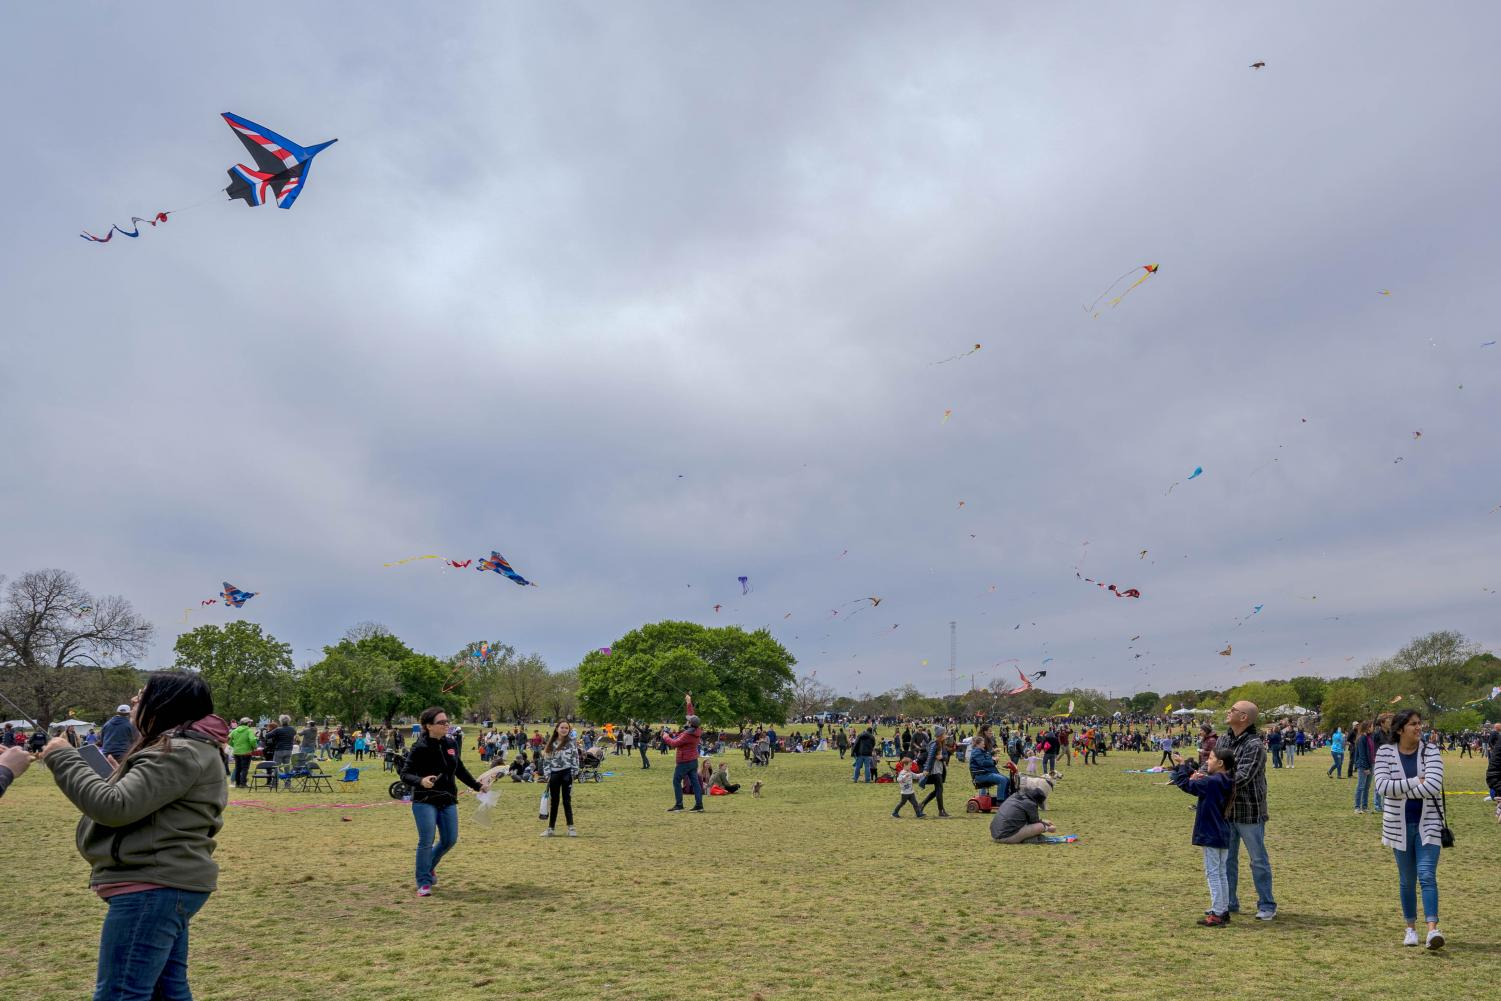 Thousands of attendees gathered at Zilker Park to fill the sky with their colorful creations. The ABC Kite Festival celebrated its 90th year this week.